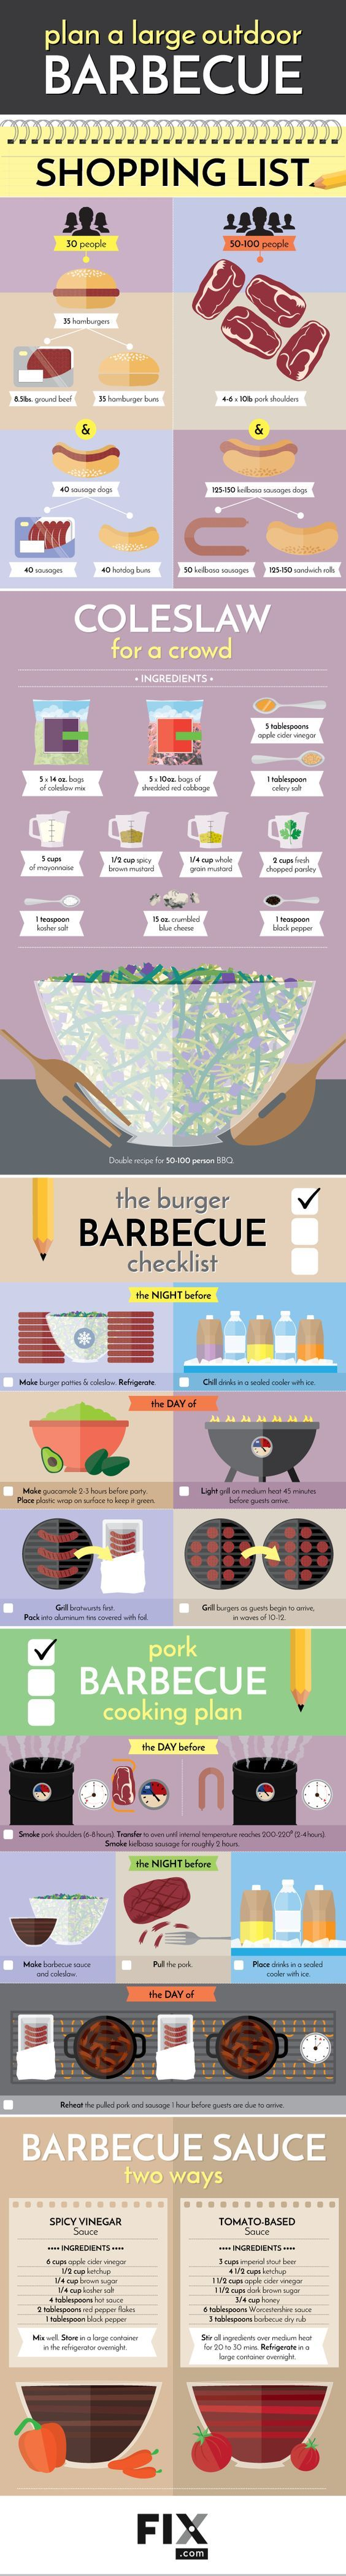 Our guide for hosting a large BBQ is great for graduations, rehearsal dinners and more! #DIY #BackyardBBQ: